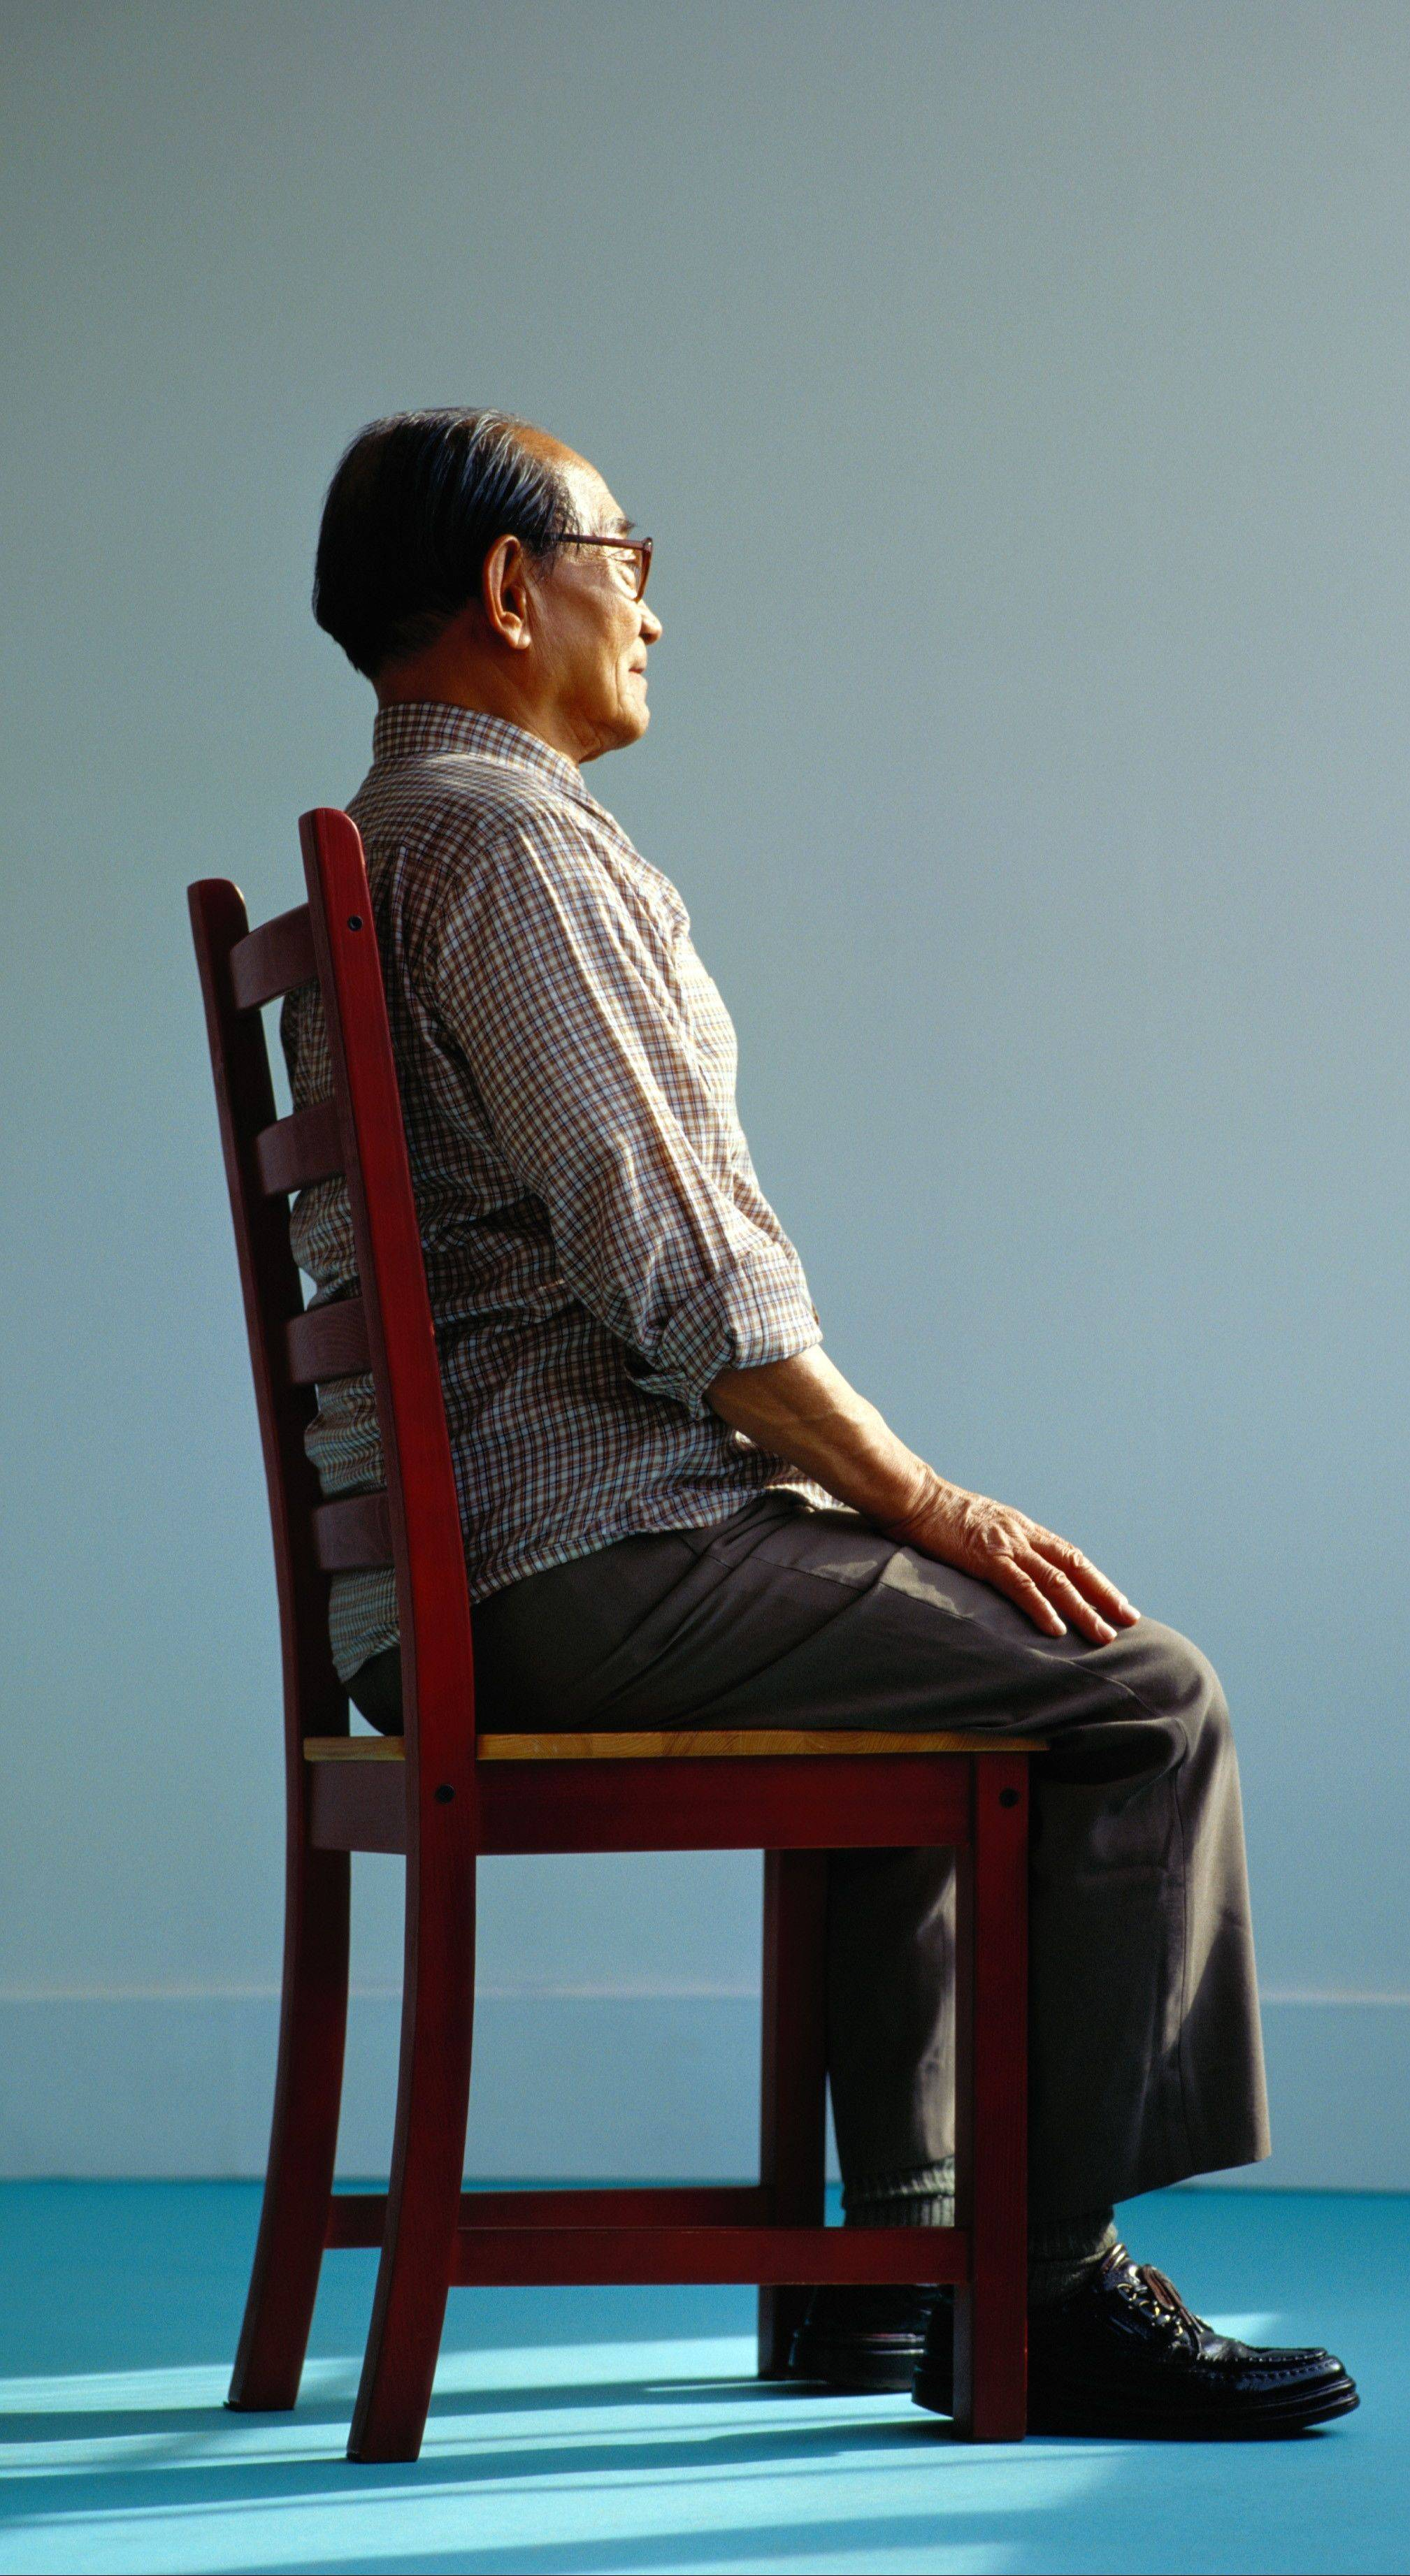 Doing simple exercises while sitting in a chair can help improve your posture and fend off back pain.